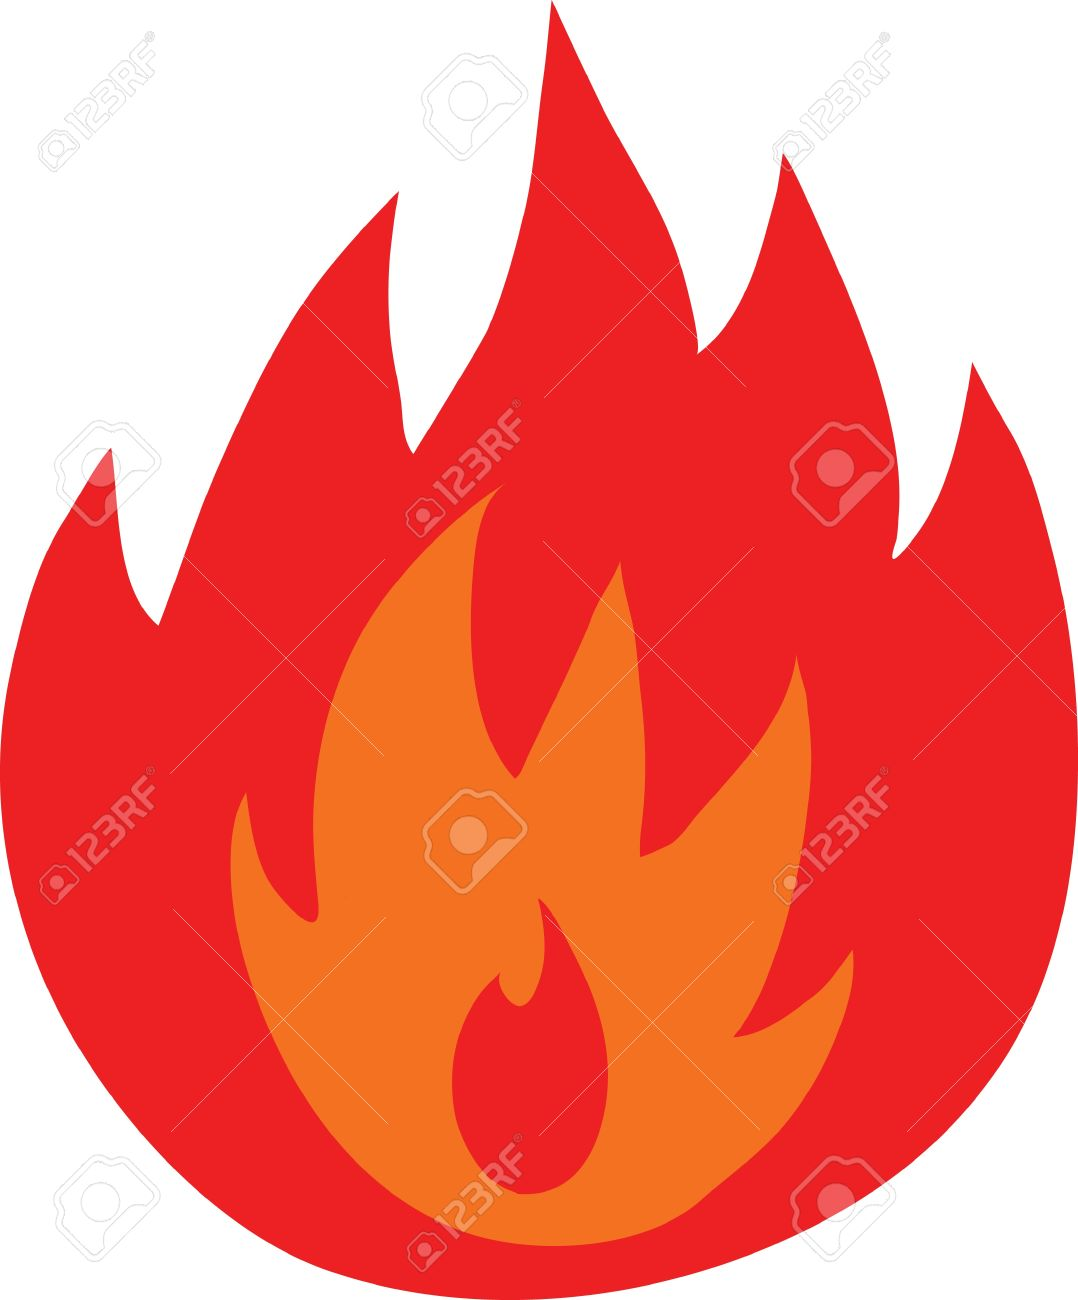 Symbol Of Fire Flames Isolated Royalty Free Cliparts Vectors And